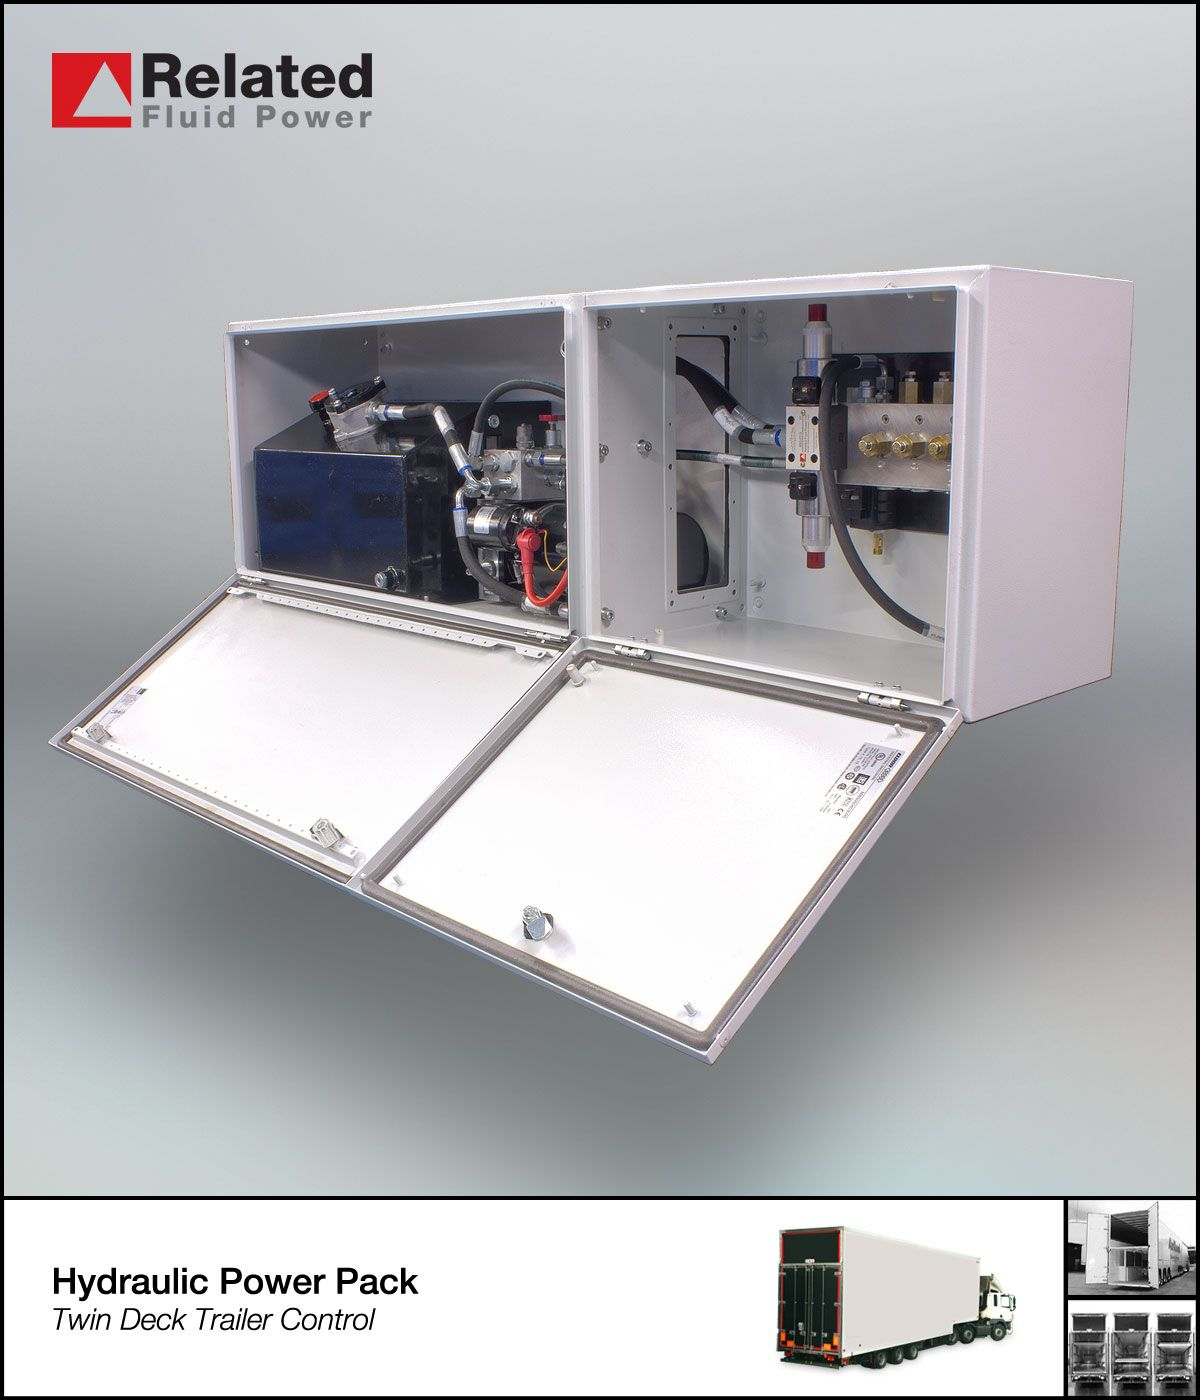 Hydraulic Power Packs And Units Custom Design Ac Dc Control Unit Description Articulated Truck Twin Deck Trailer Find Out More On Our